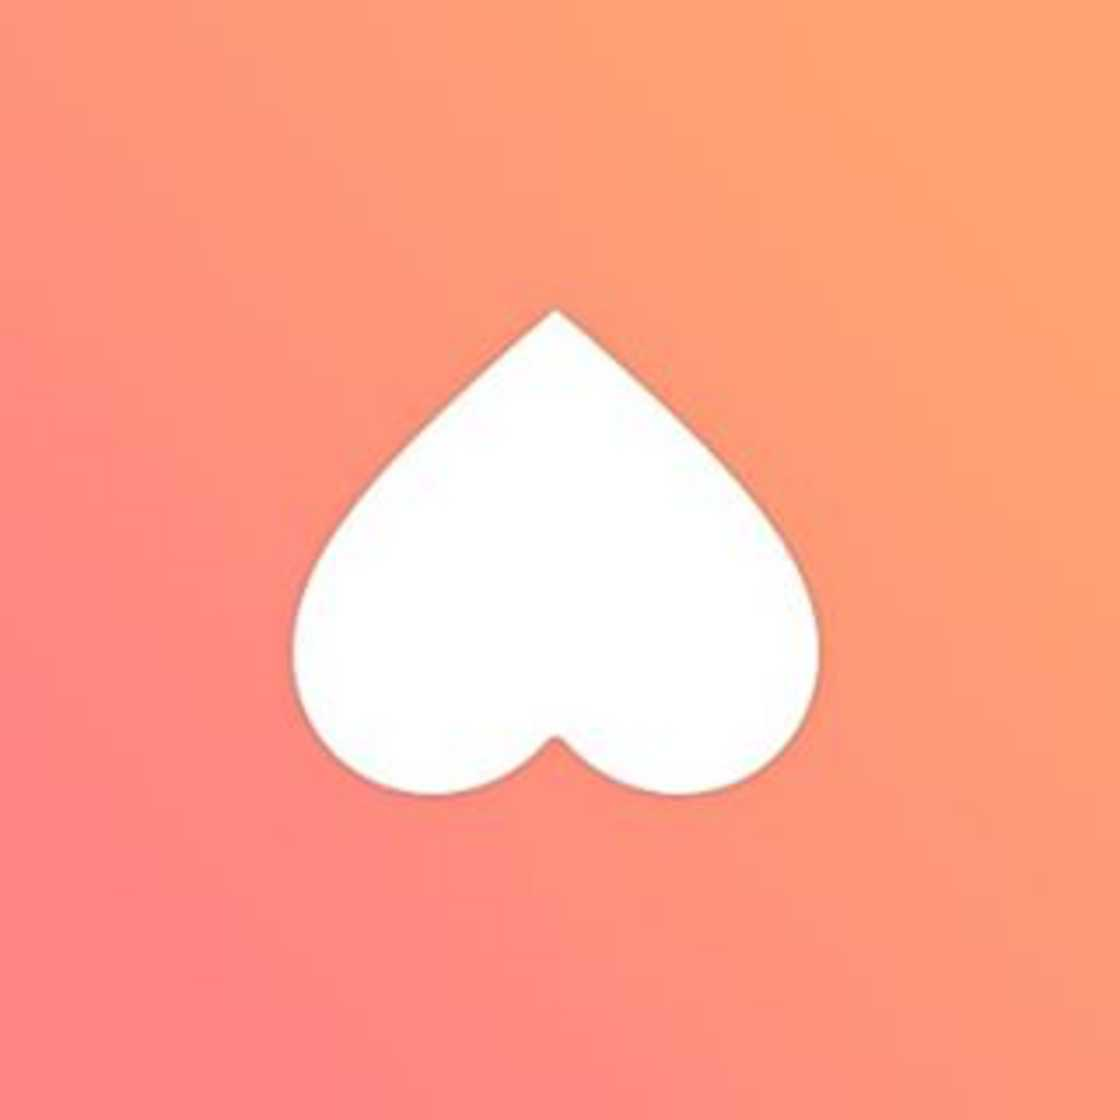 Hater - The Tinder to find those who hate the same things you do